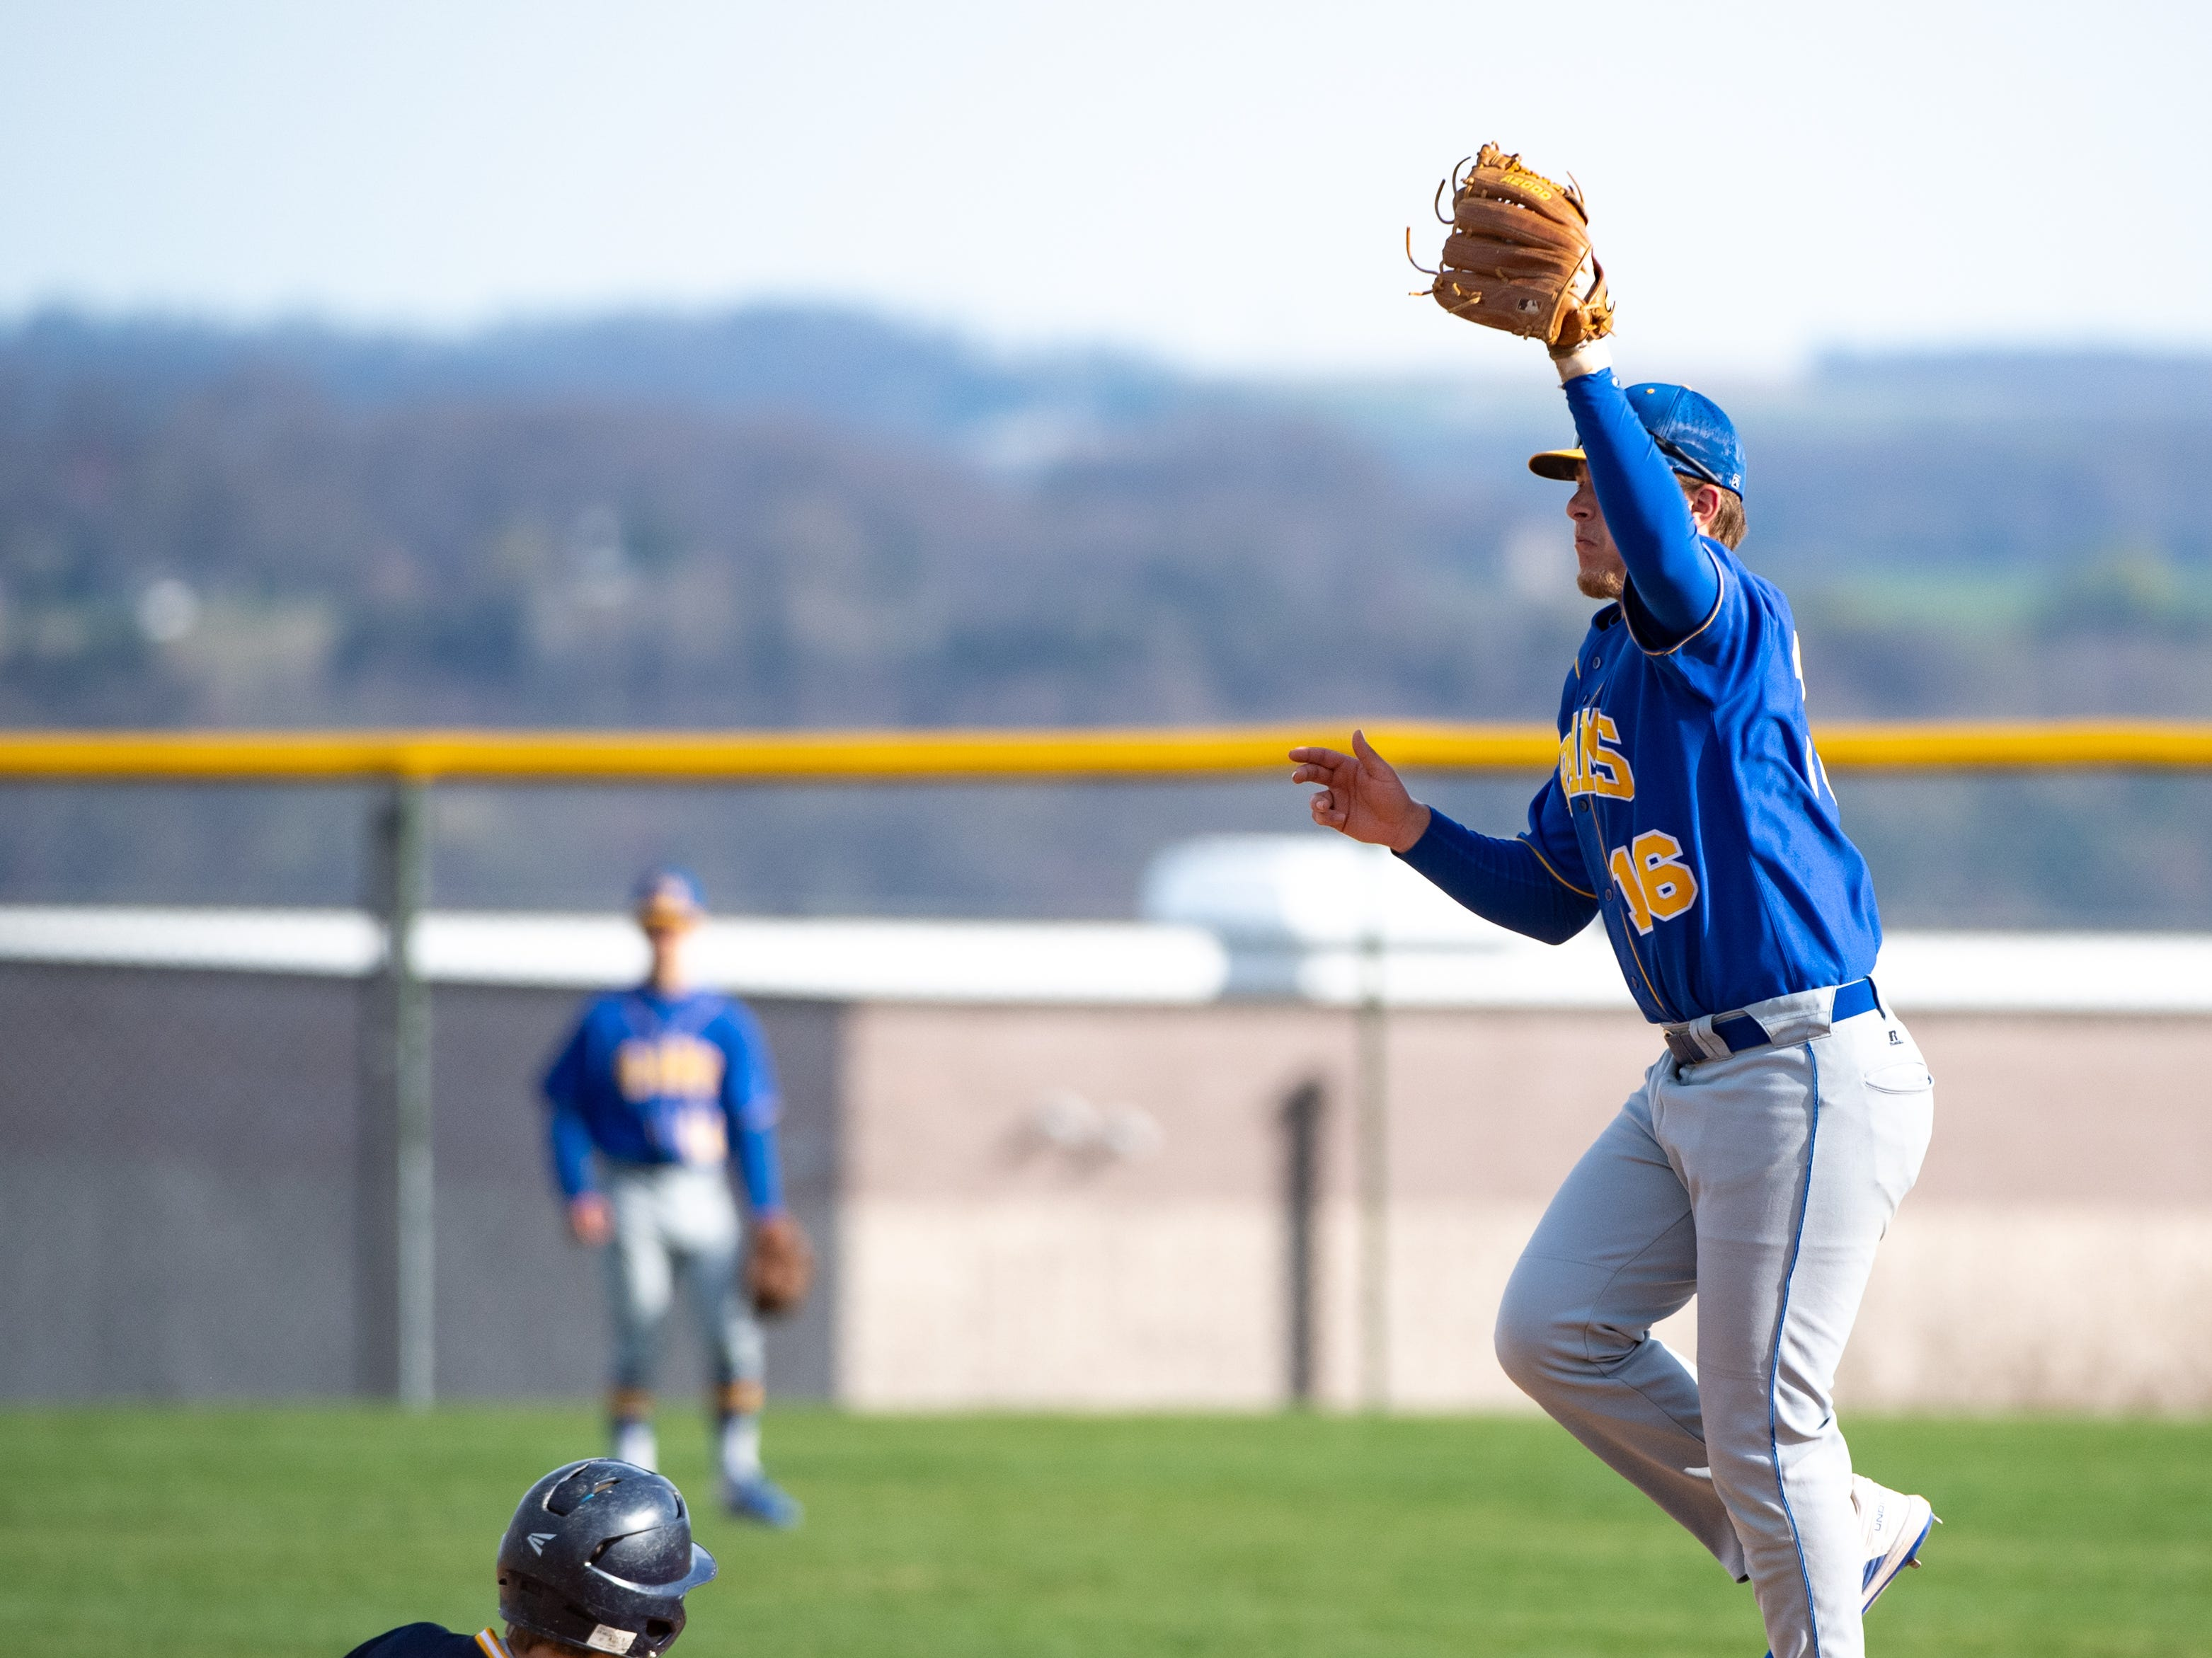 Wyatt McCleary (16) catches the ball as Jacob Bardo (33) slides to second base during the baseball game between Eastern York and Kennard-Dale, April 10, 2019 at Eastern York High School. The Golden Knights defeated the Rams 8 to 1.